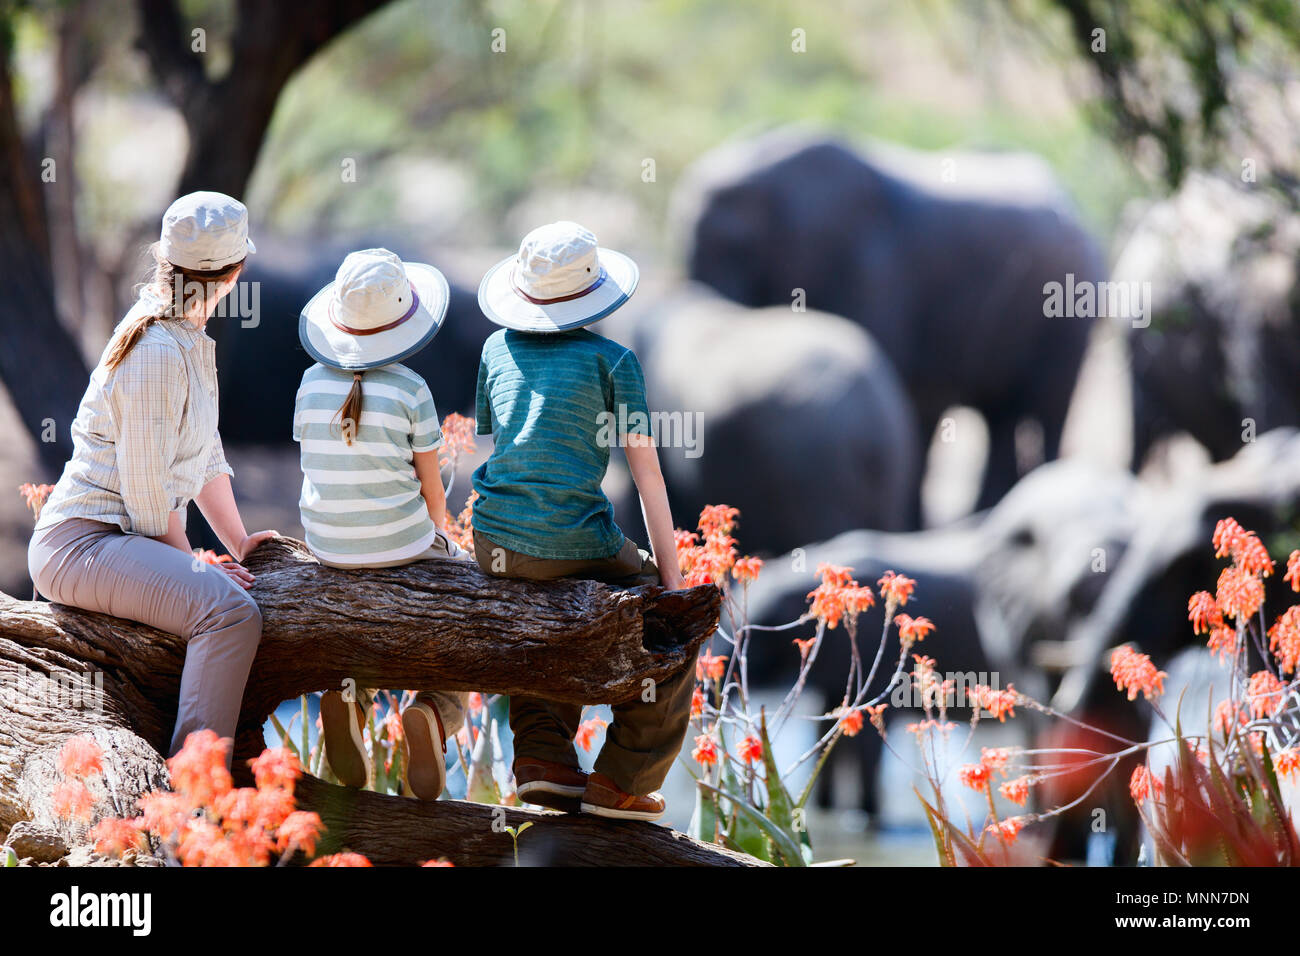 Family of mother and kids on African safari vacation enjoying wildlife viewing at watering hole - Stock Image